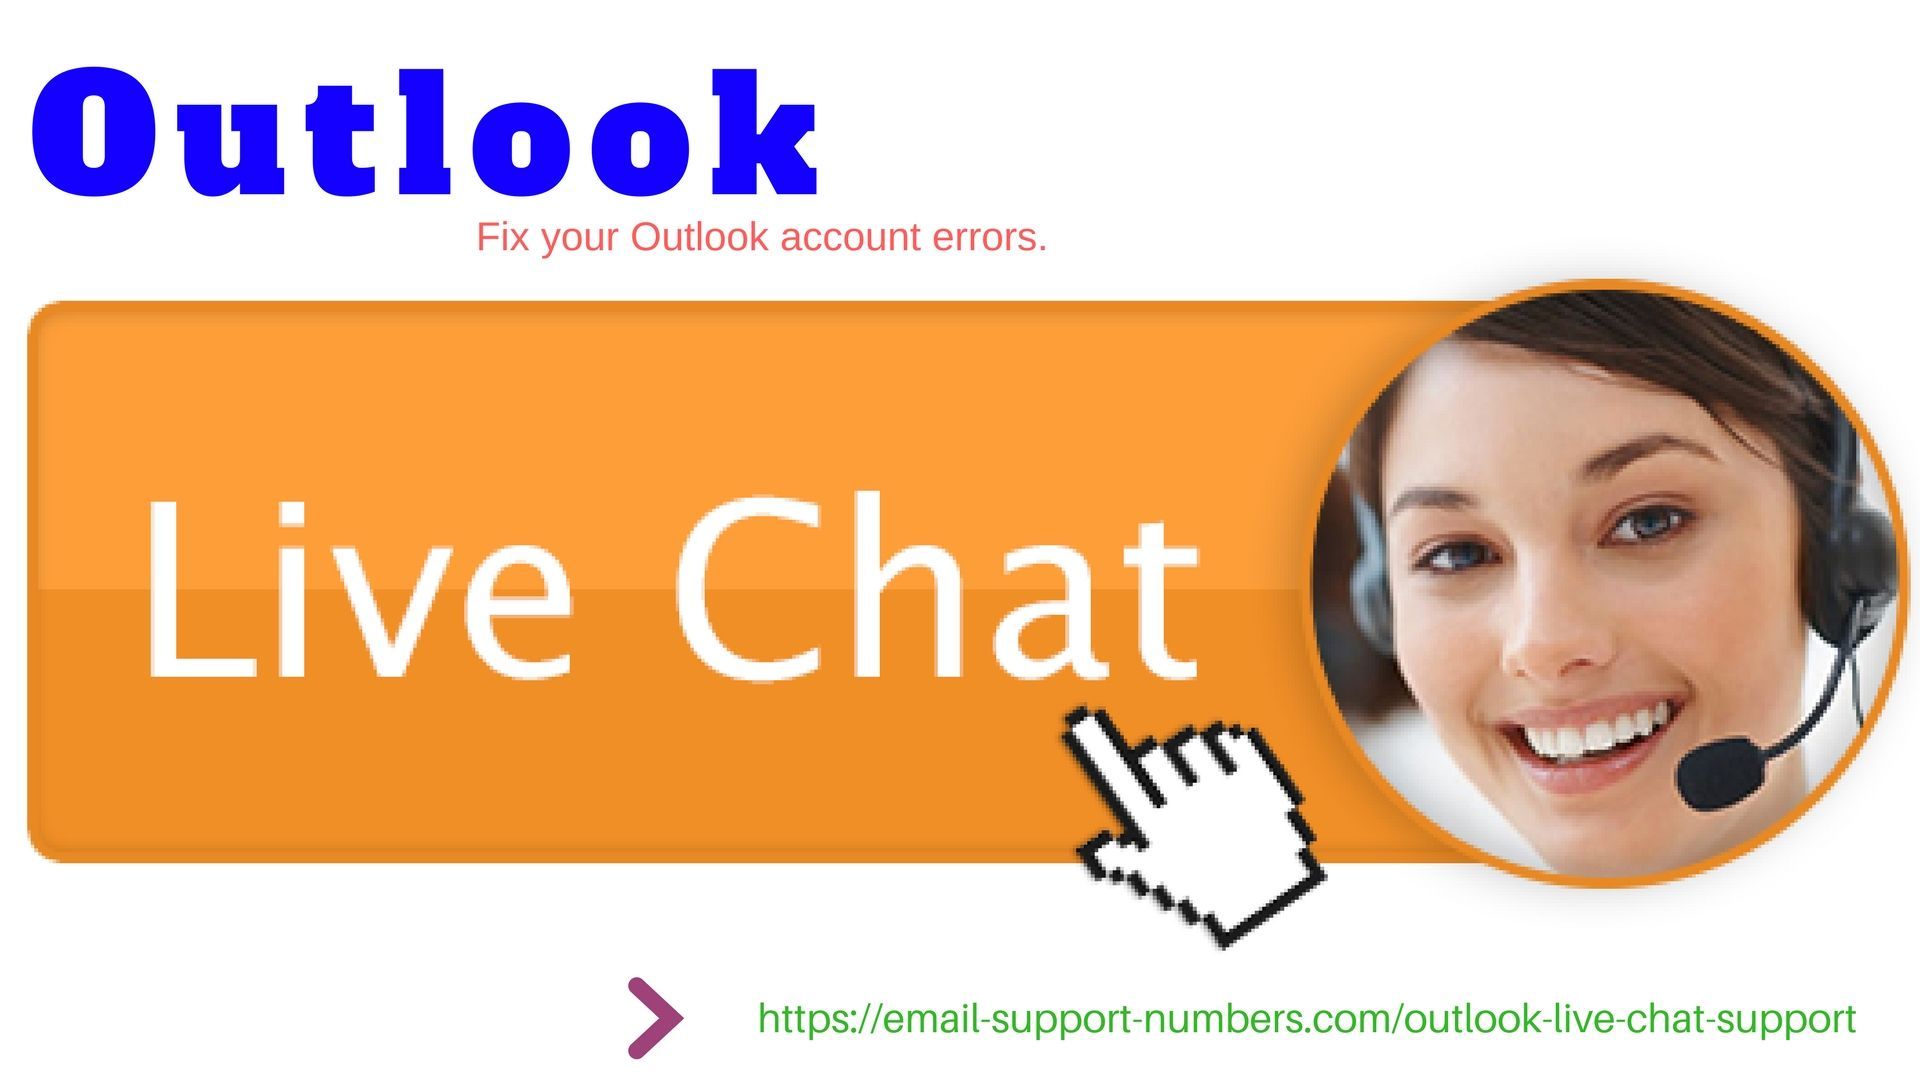 Outlook Live Chat Support Discuss your Outlook account